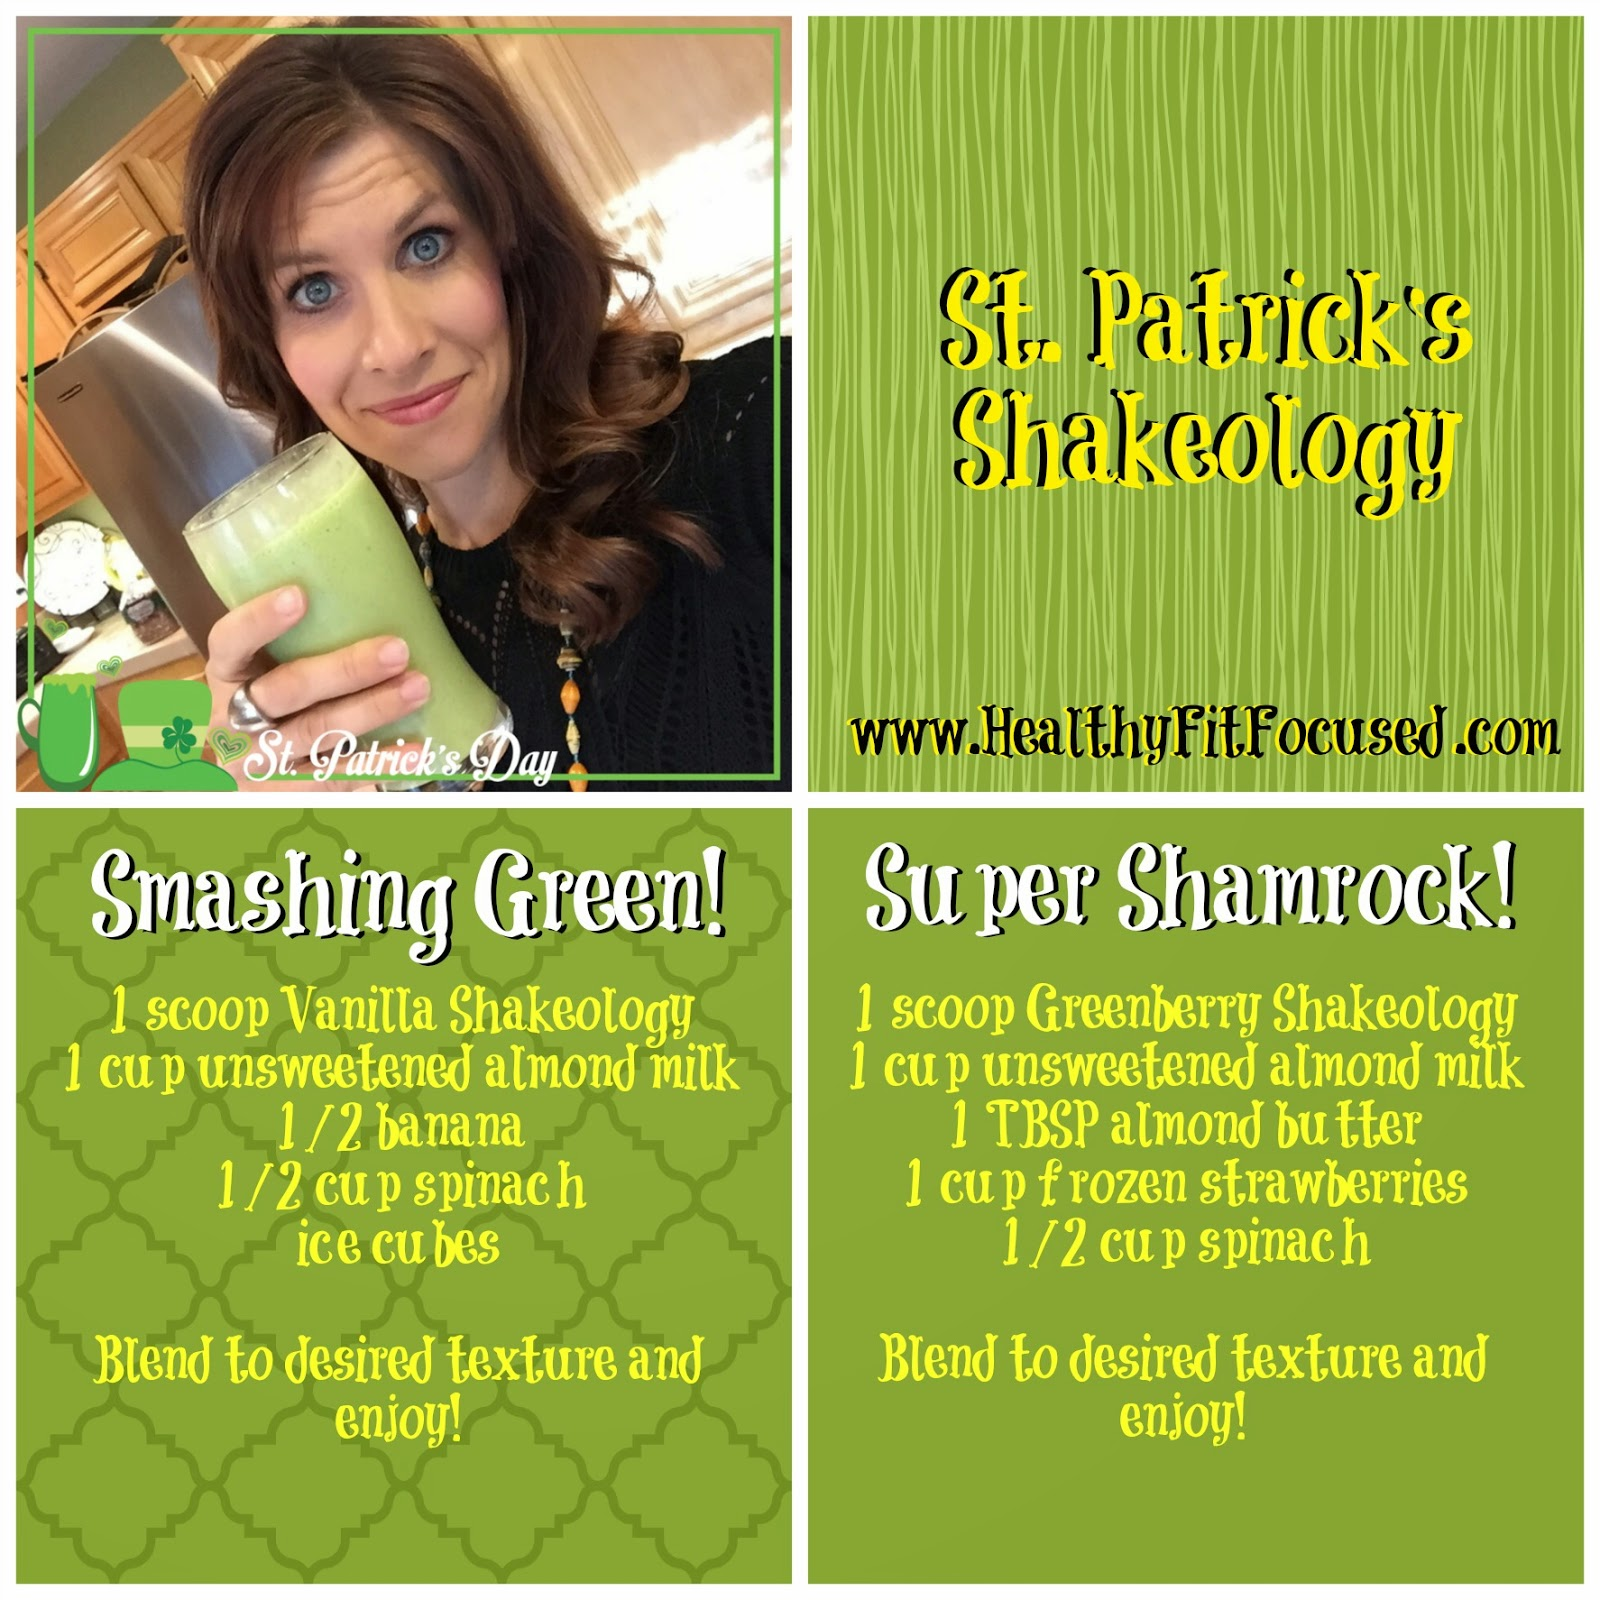 Shakeology Super Happy St. Patrick's Day Shamrock Recipe, Greenberry Shakeology Recipe, www.HealthyFitFocused.com